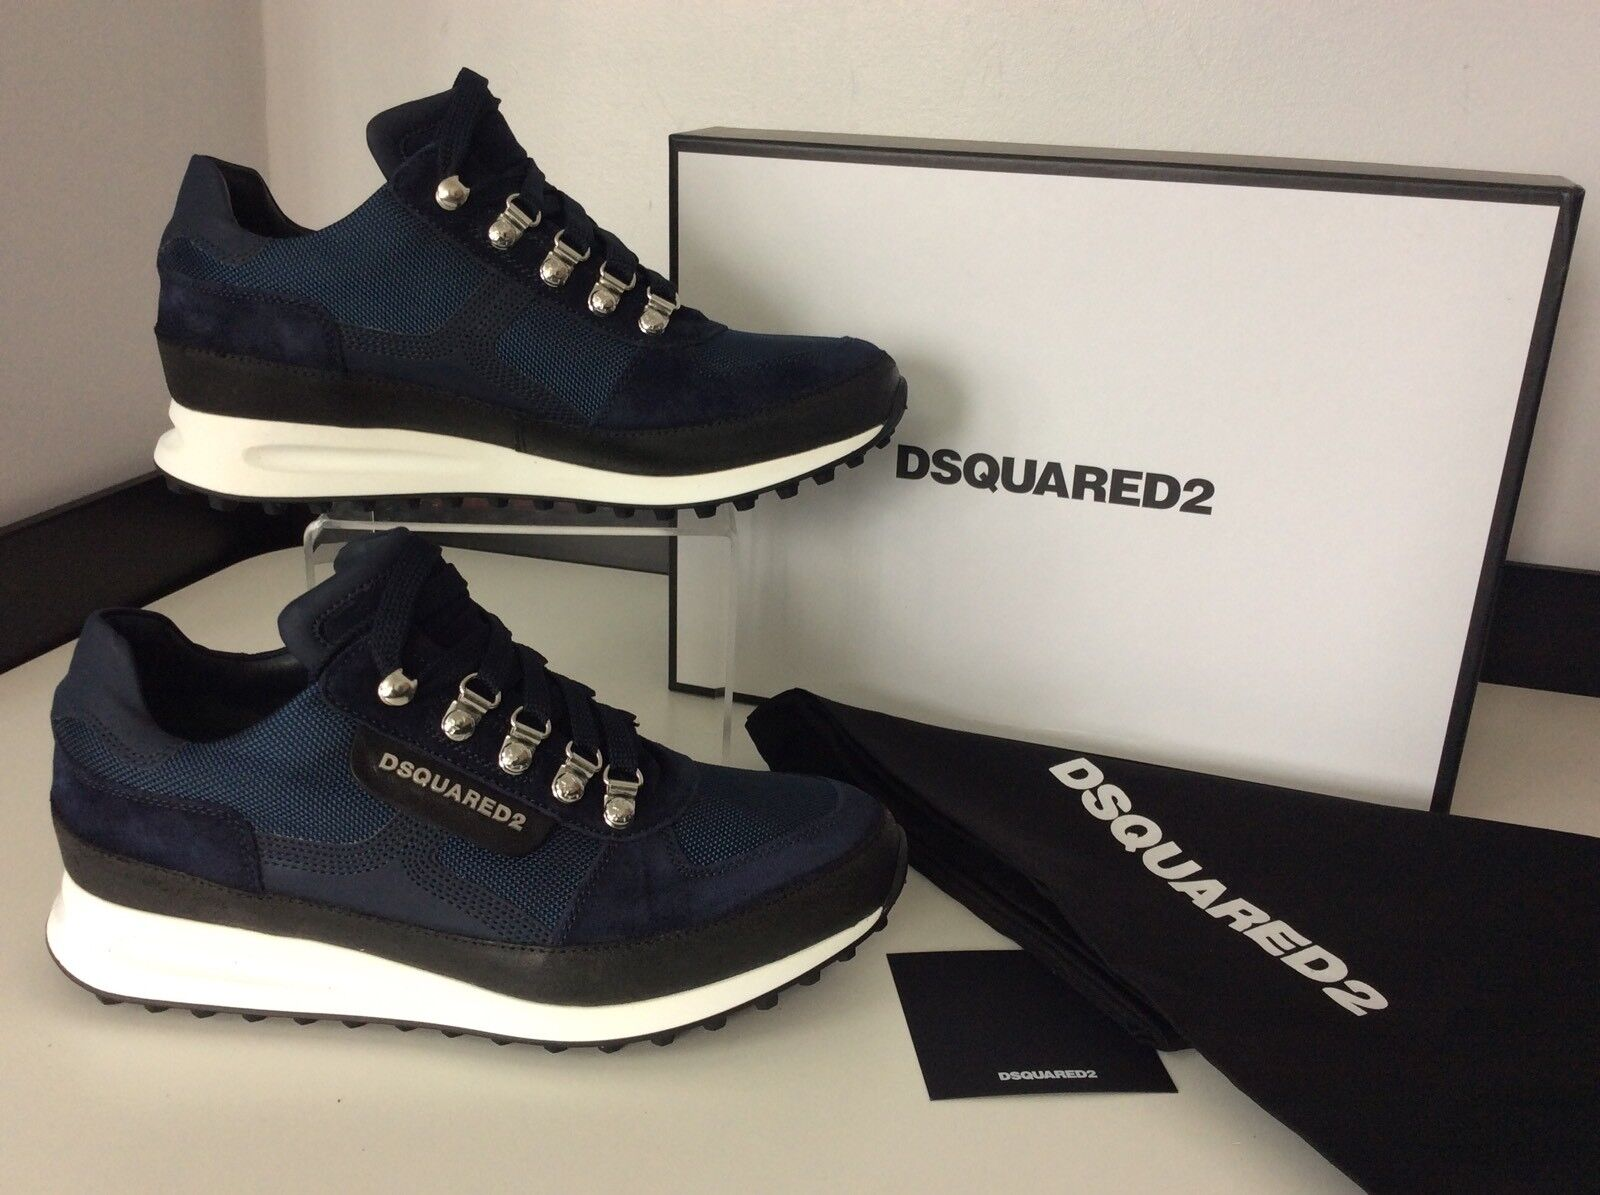 Dsquared2 White Ds2 Men's Sneakers, Runners, Eu39, Navy Blue & White Dsquared2 NEW TRAINERS 9eac31